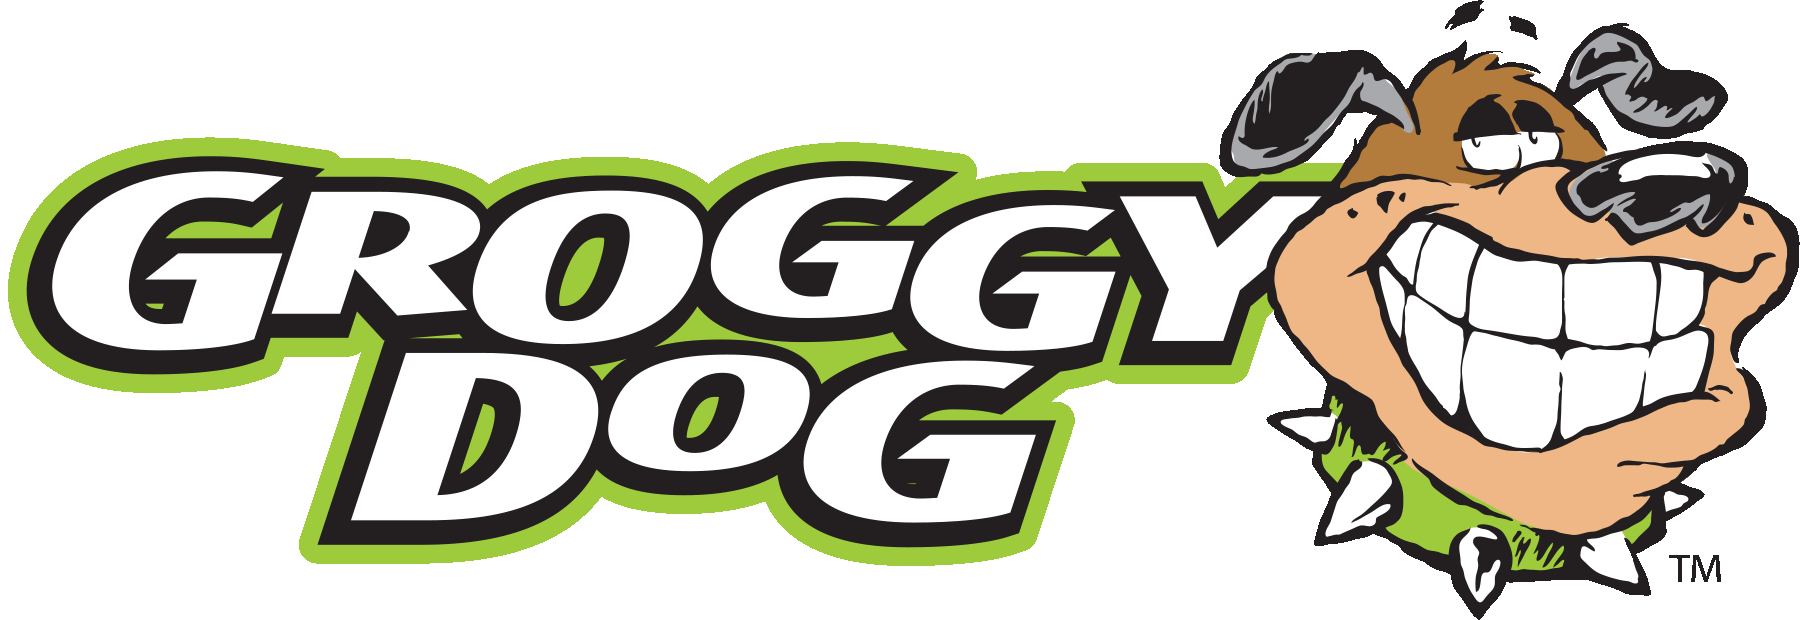 Groggy Dog Promotional Products Logo